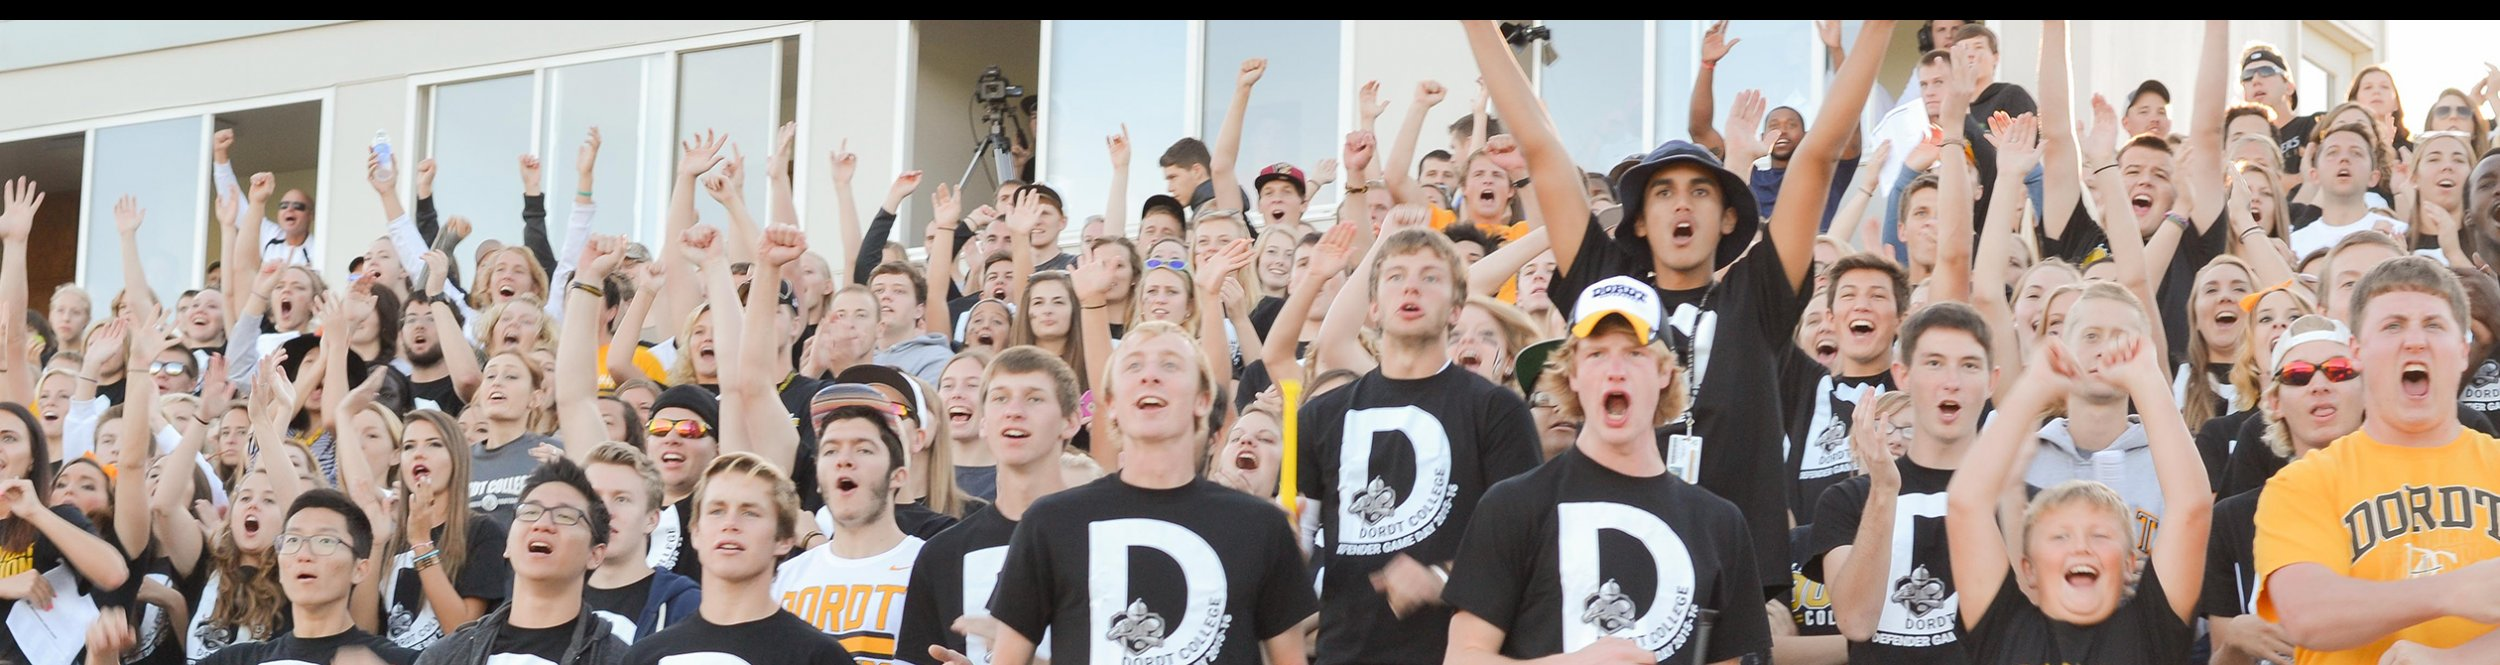 Dordt students raise their arms and cheers in the bleachers at a football game.